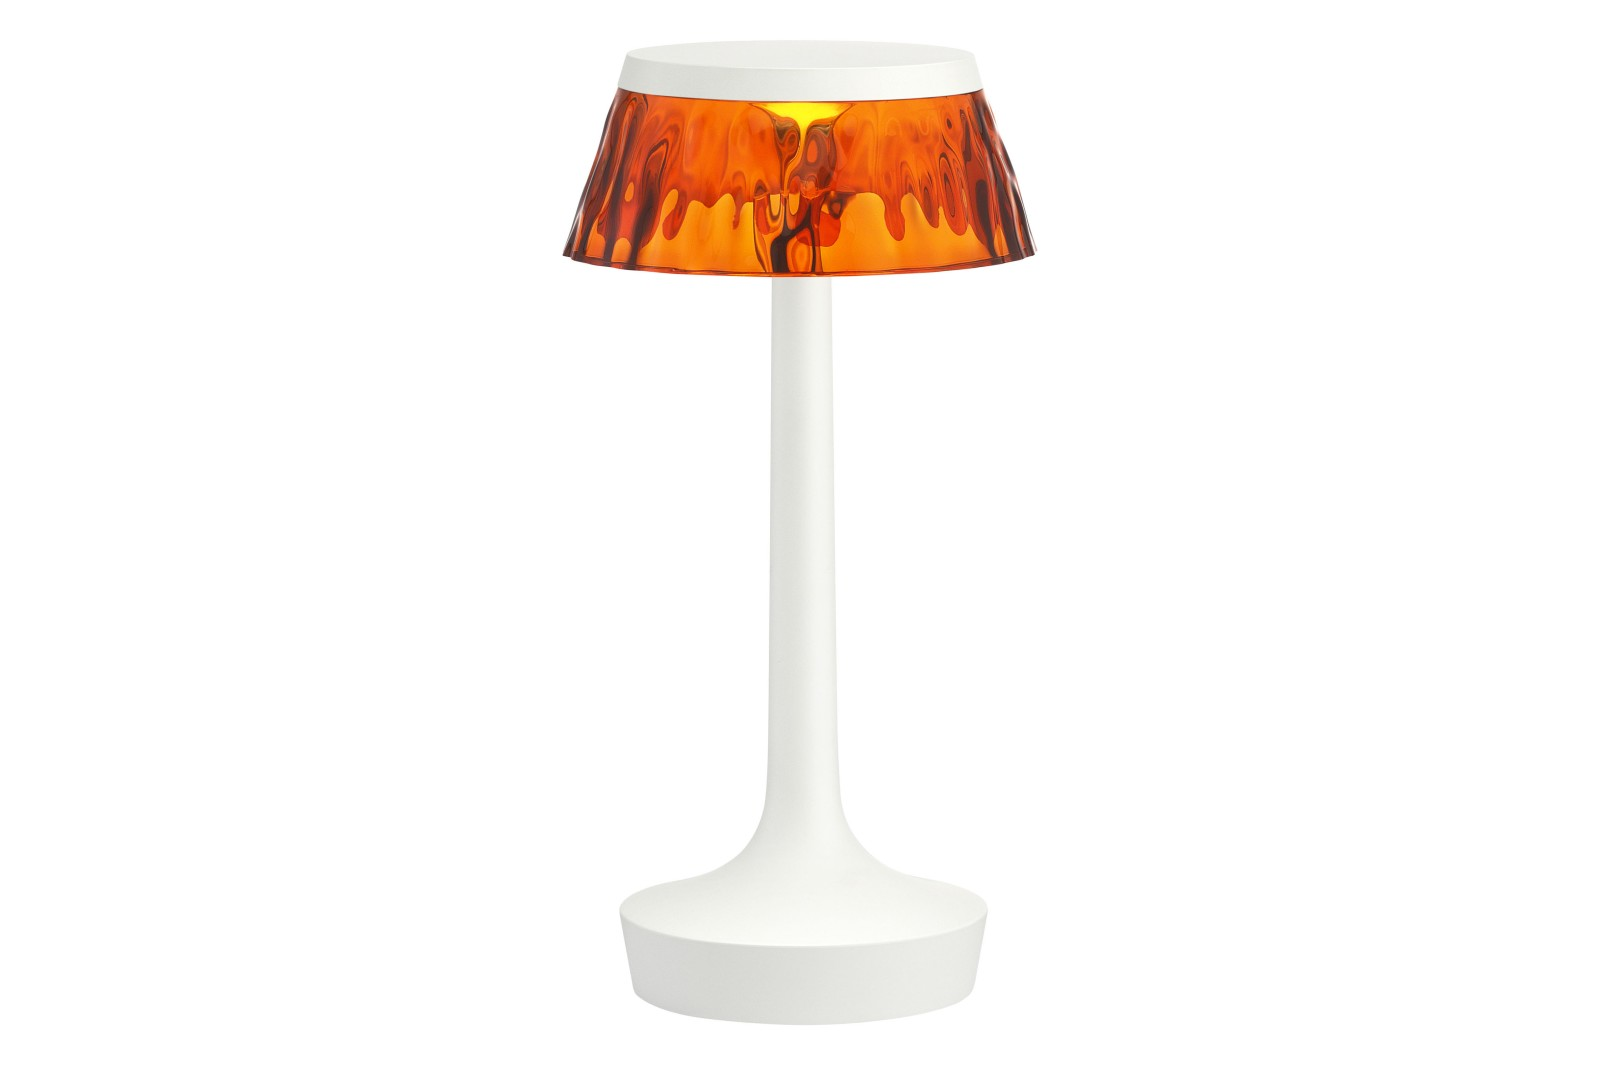 Bon Jour Unplugged Table Lamp PMMA Matt White, PMMA Amber